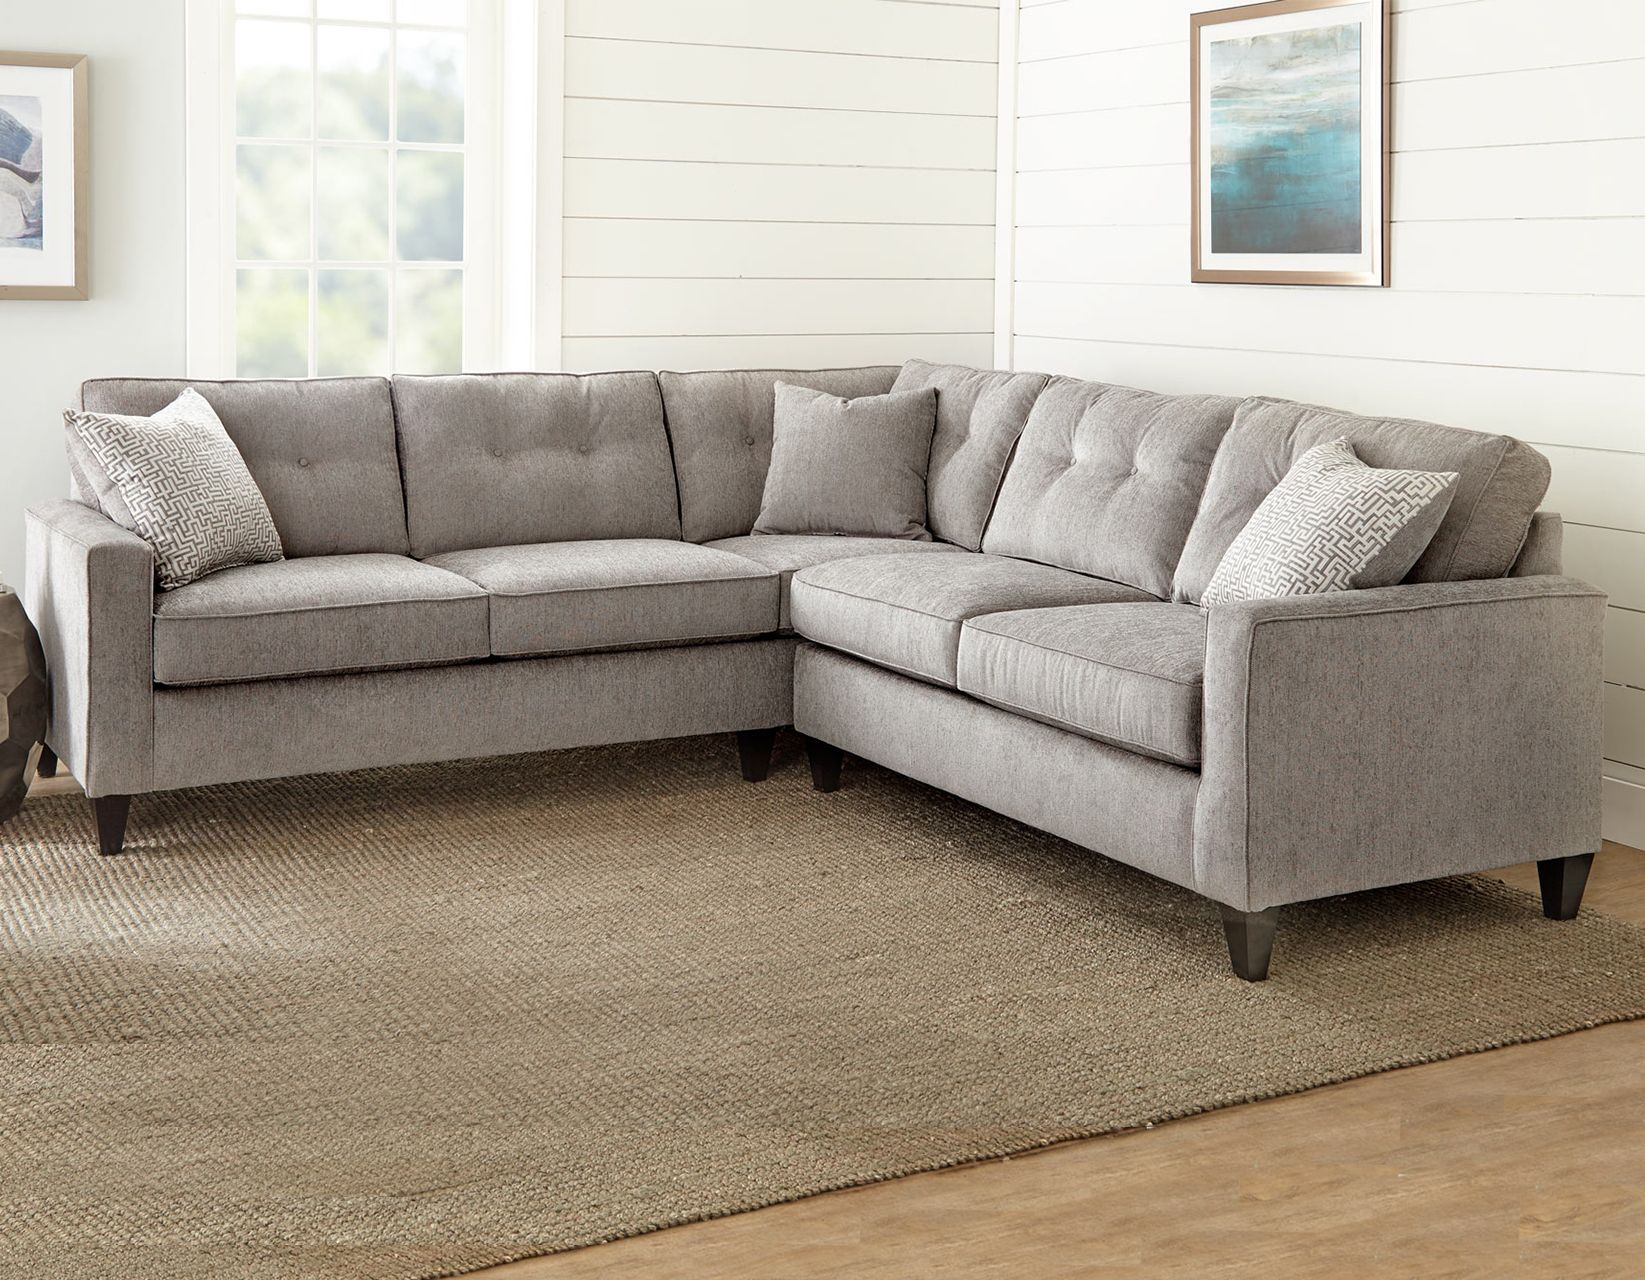 Steve Silver Md950raf Maddox Gray Right Arm Facing Corner Sofa With 1 Pillow At Sutherlands